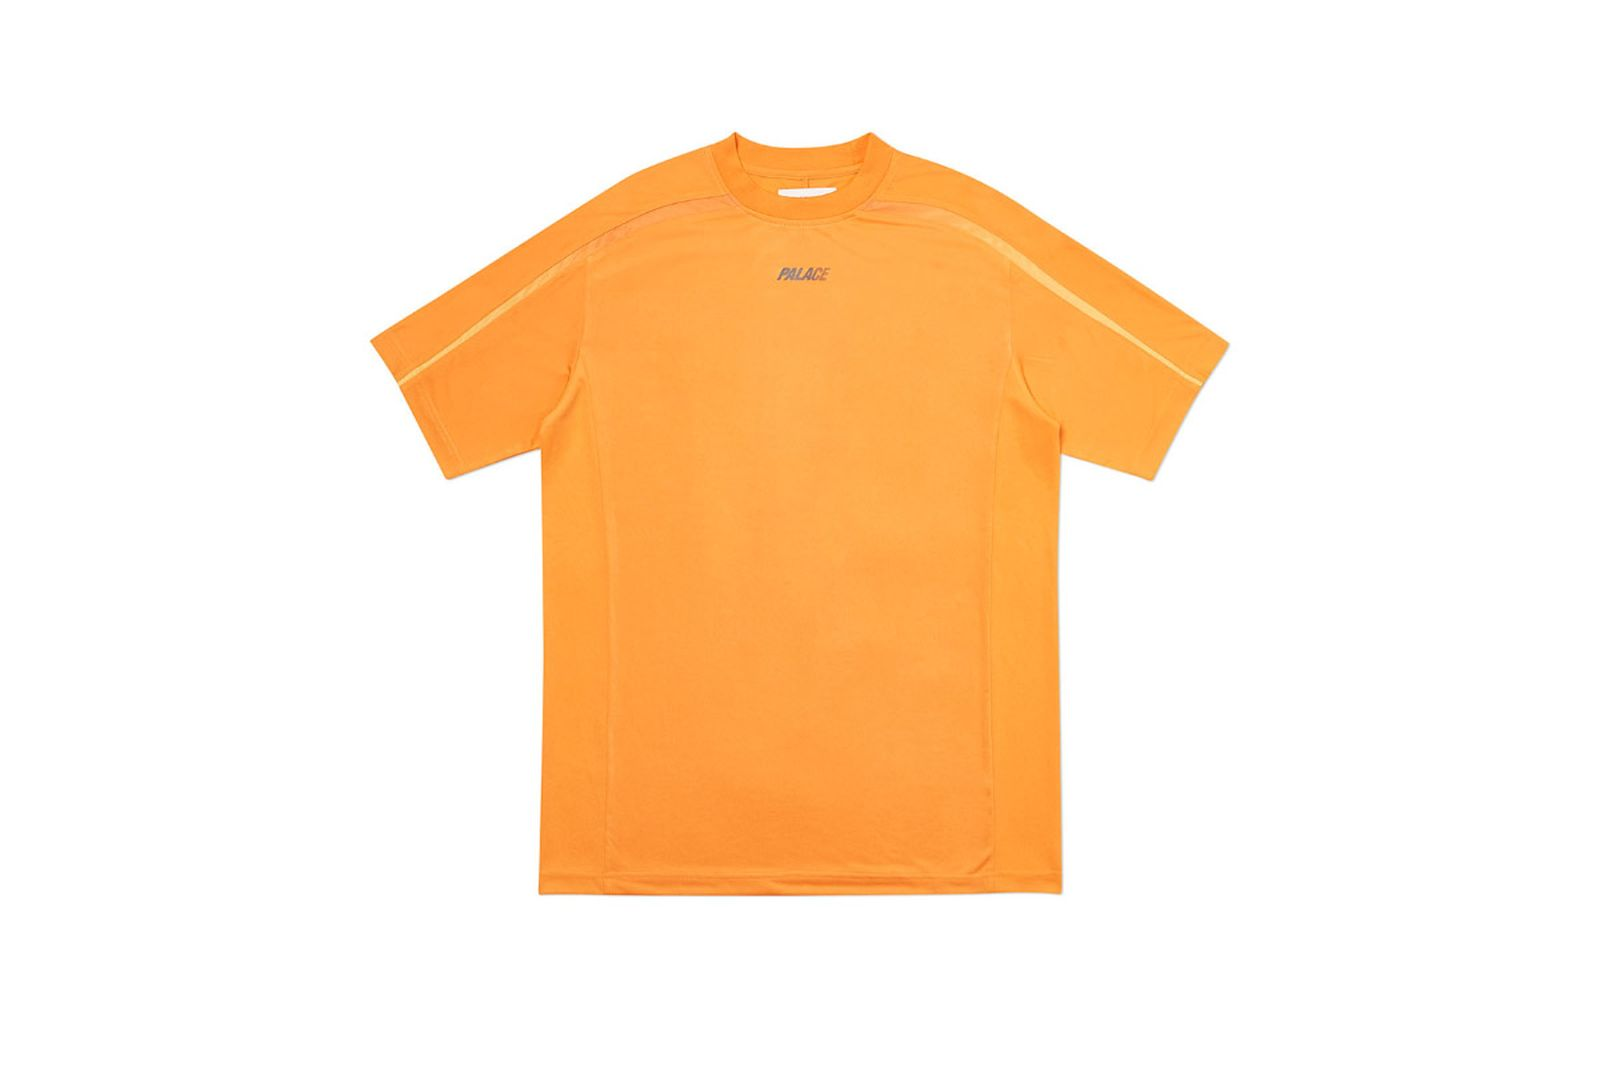 Palace 2019 Autumn T Shirt Stripe Logo orange front fw19